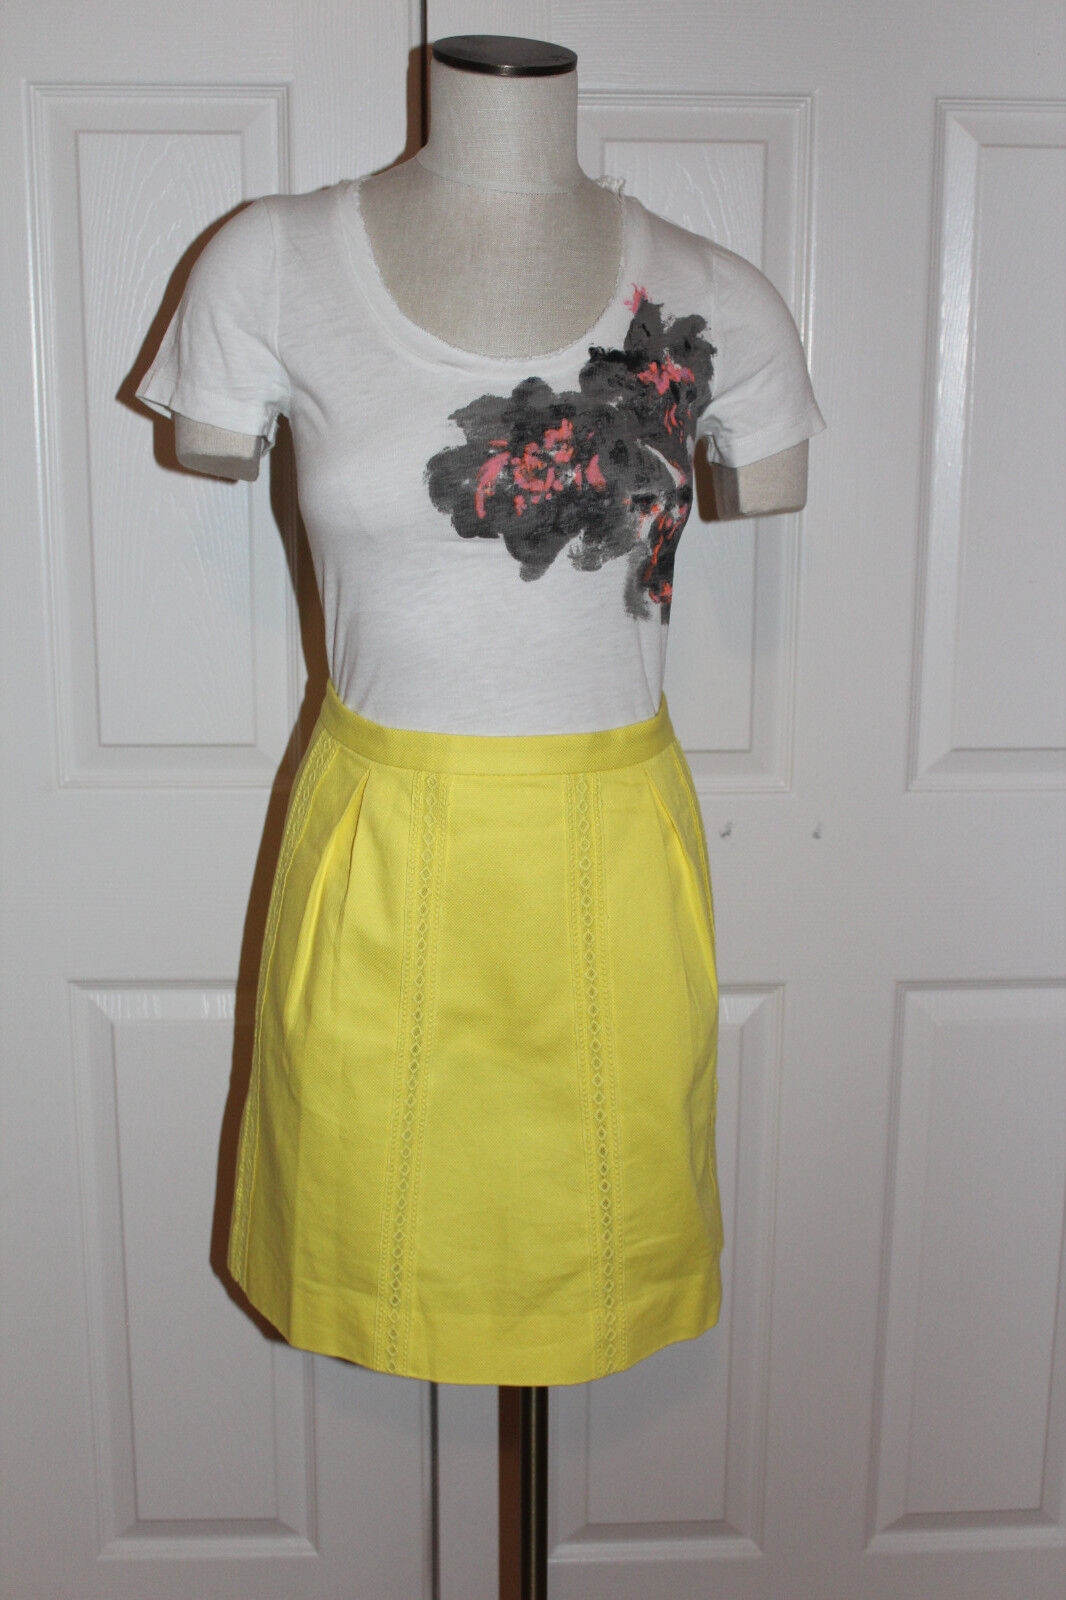 J.Crew Cotton Lace-stripe Skirt Size 12 NWT Light Citron color